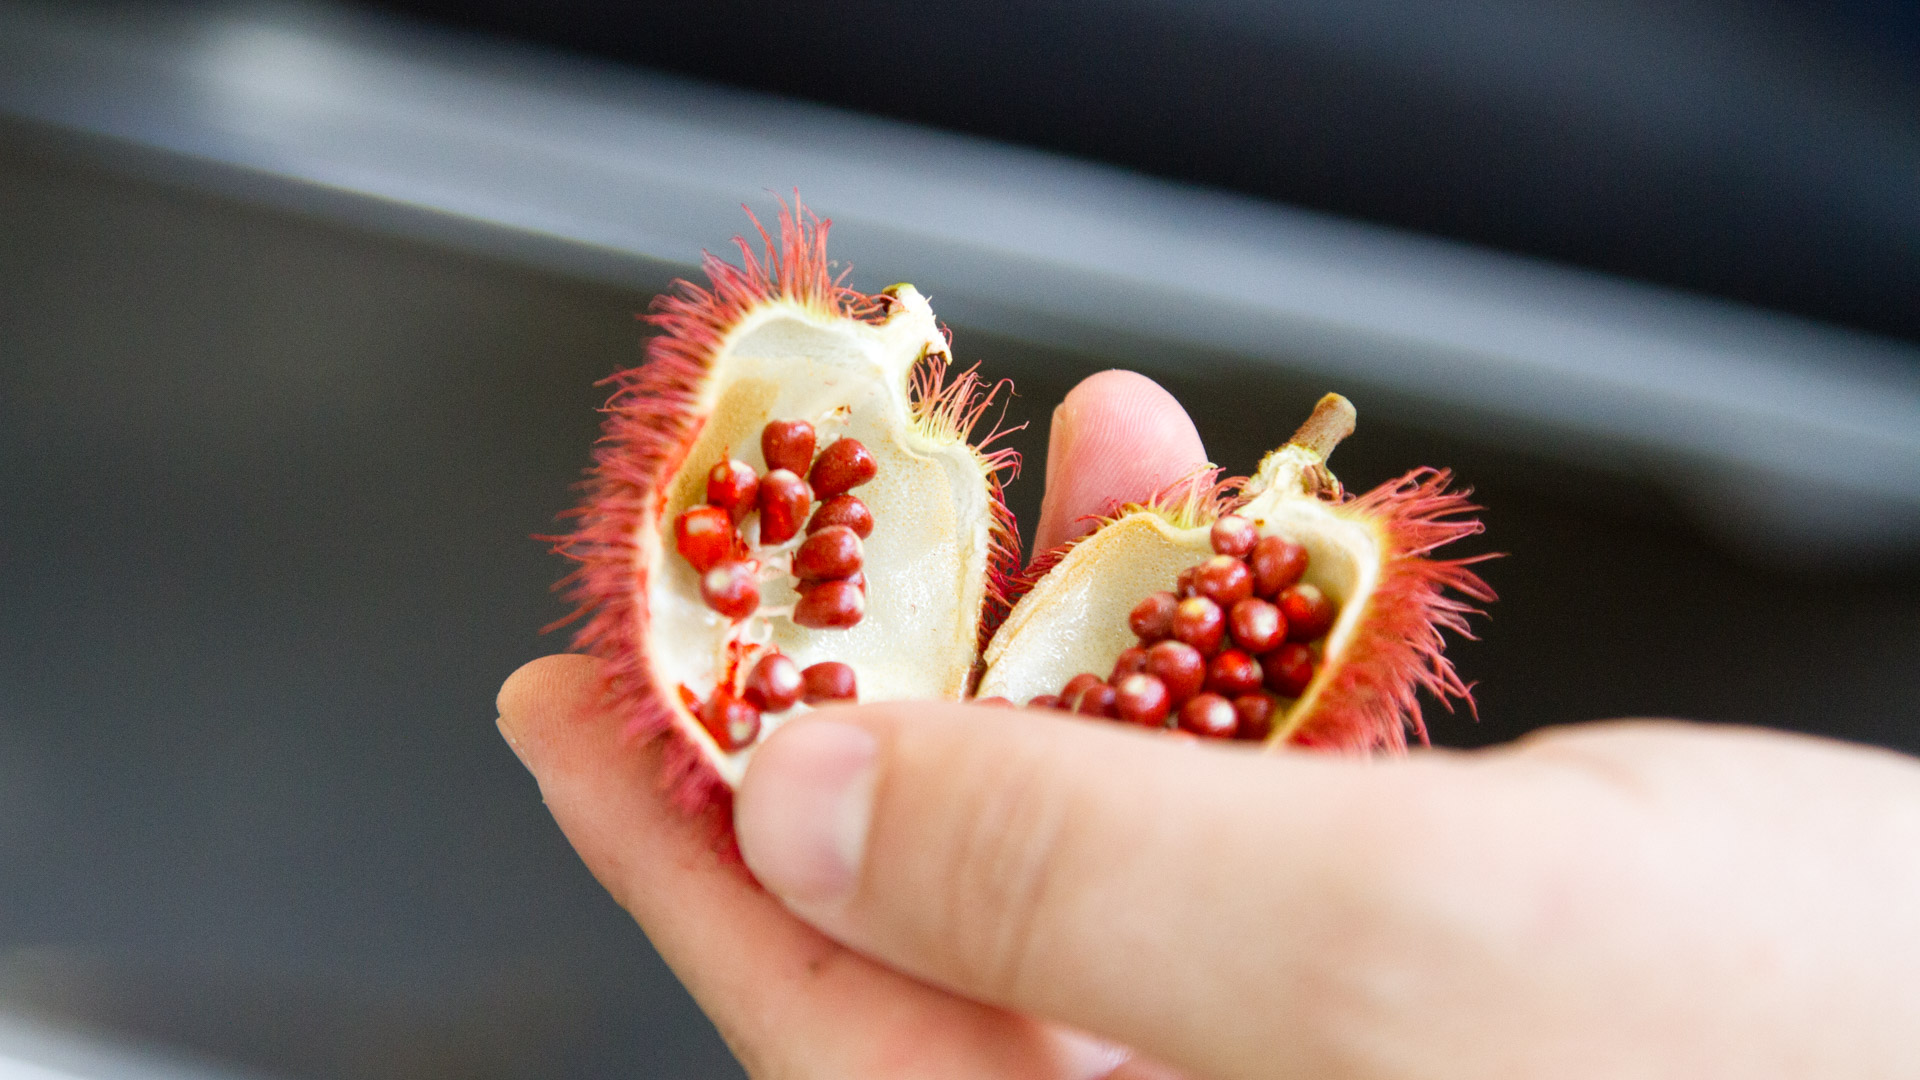 Achiote seeds, also called annatto or bijol, are used for their bright red pigment.